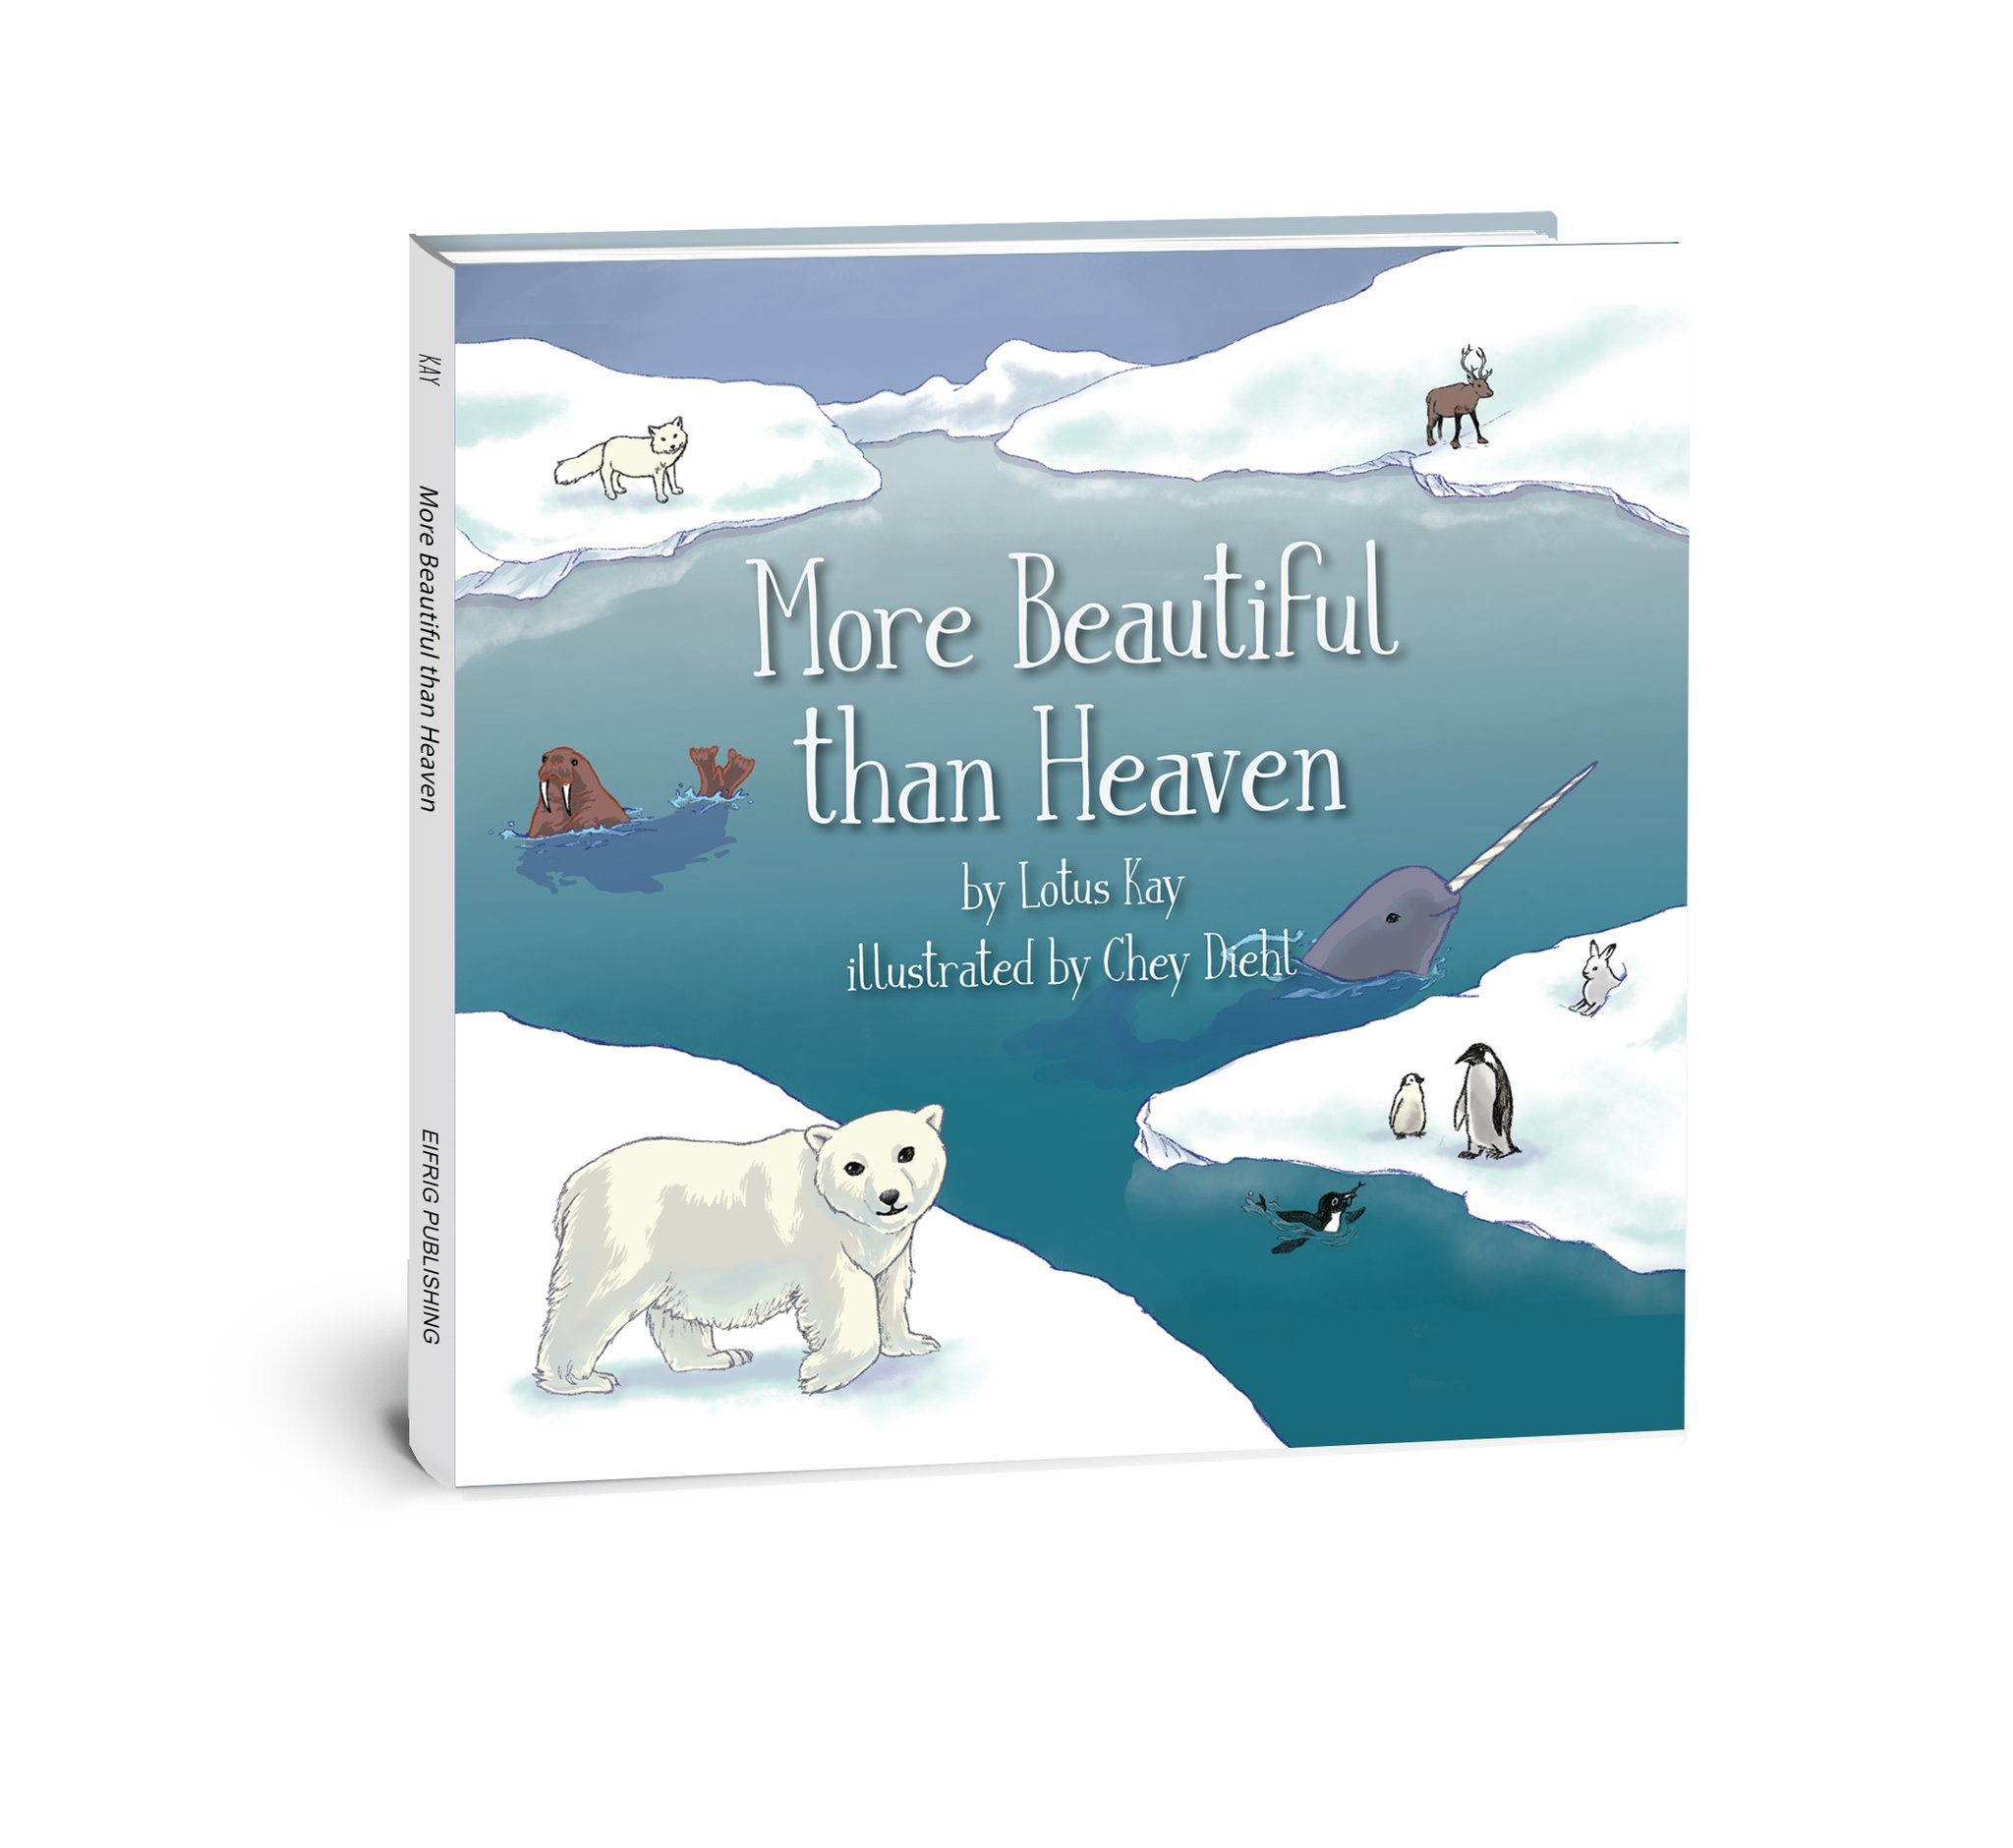 More Beautiful than Heaven - by Lotus KayJoin Beary the bear and our other animal family and friends as we celebrate the wonder and beauty of our home, the Earth, and be inspired to care for our planet and protect it.